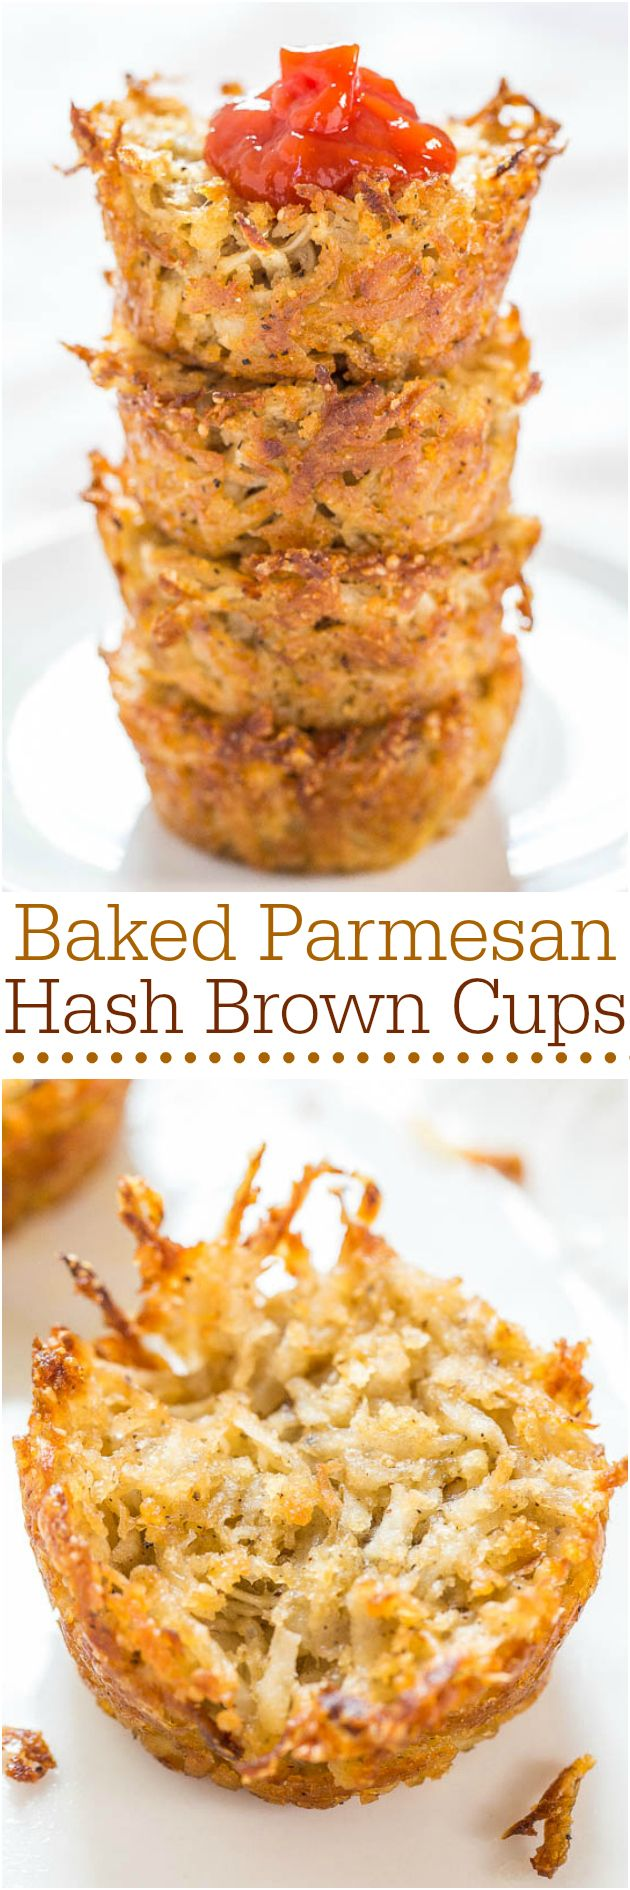 Baked Parmesan Hash Brown Cups - Easiest hash browns ever! No stovetop flipping! A great side dish for your #MothersDay #Brunch !